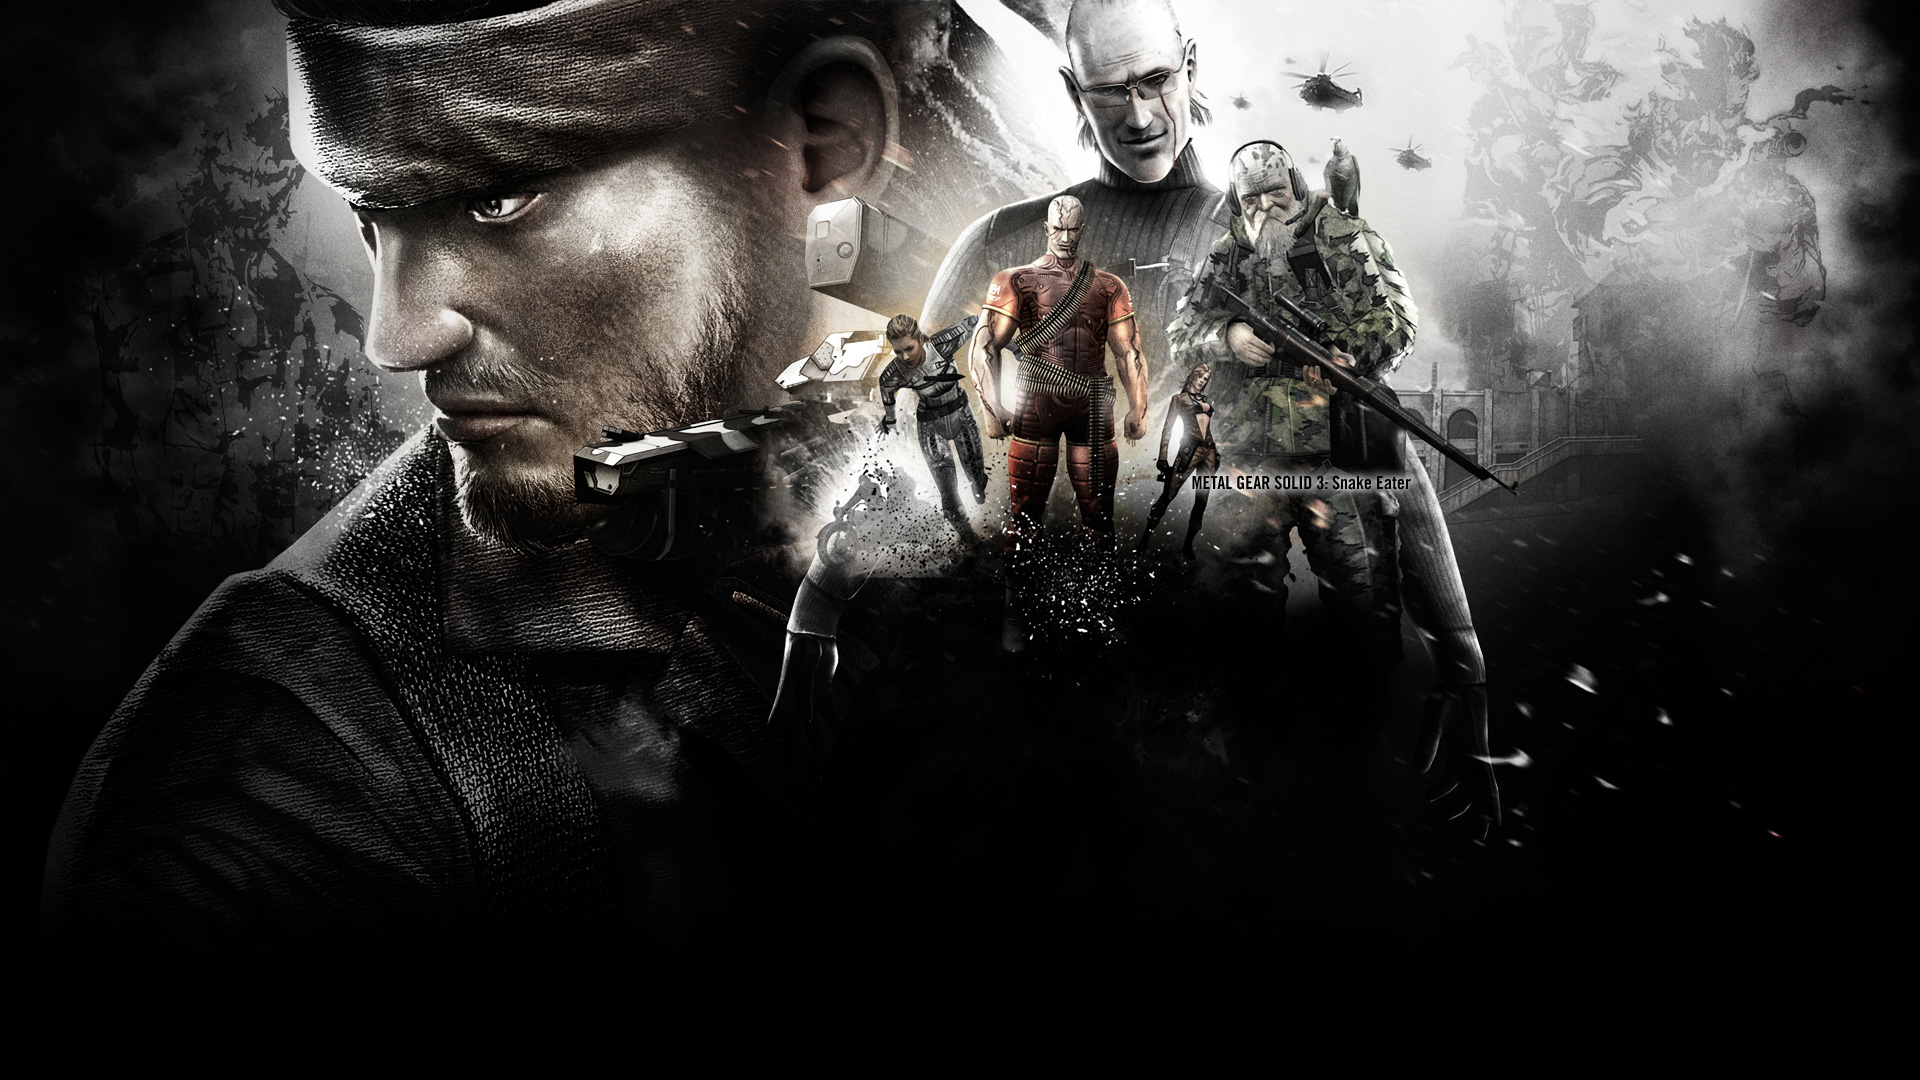 Free Download Metal Gear Wallpaper 1920x1080 Metal Gear